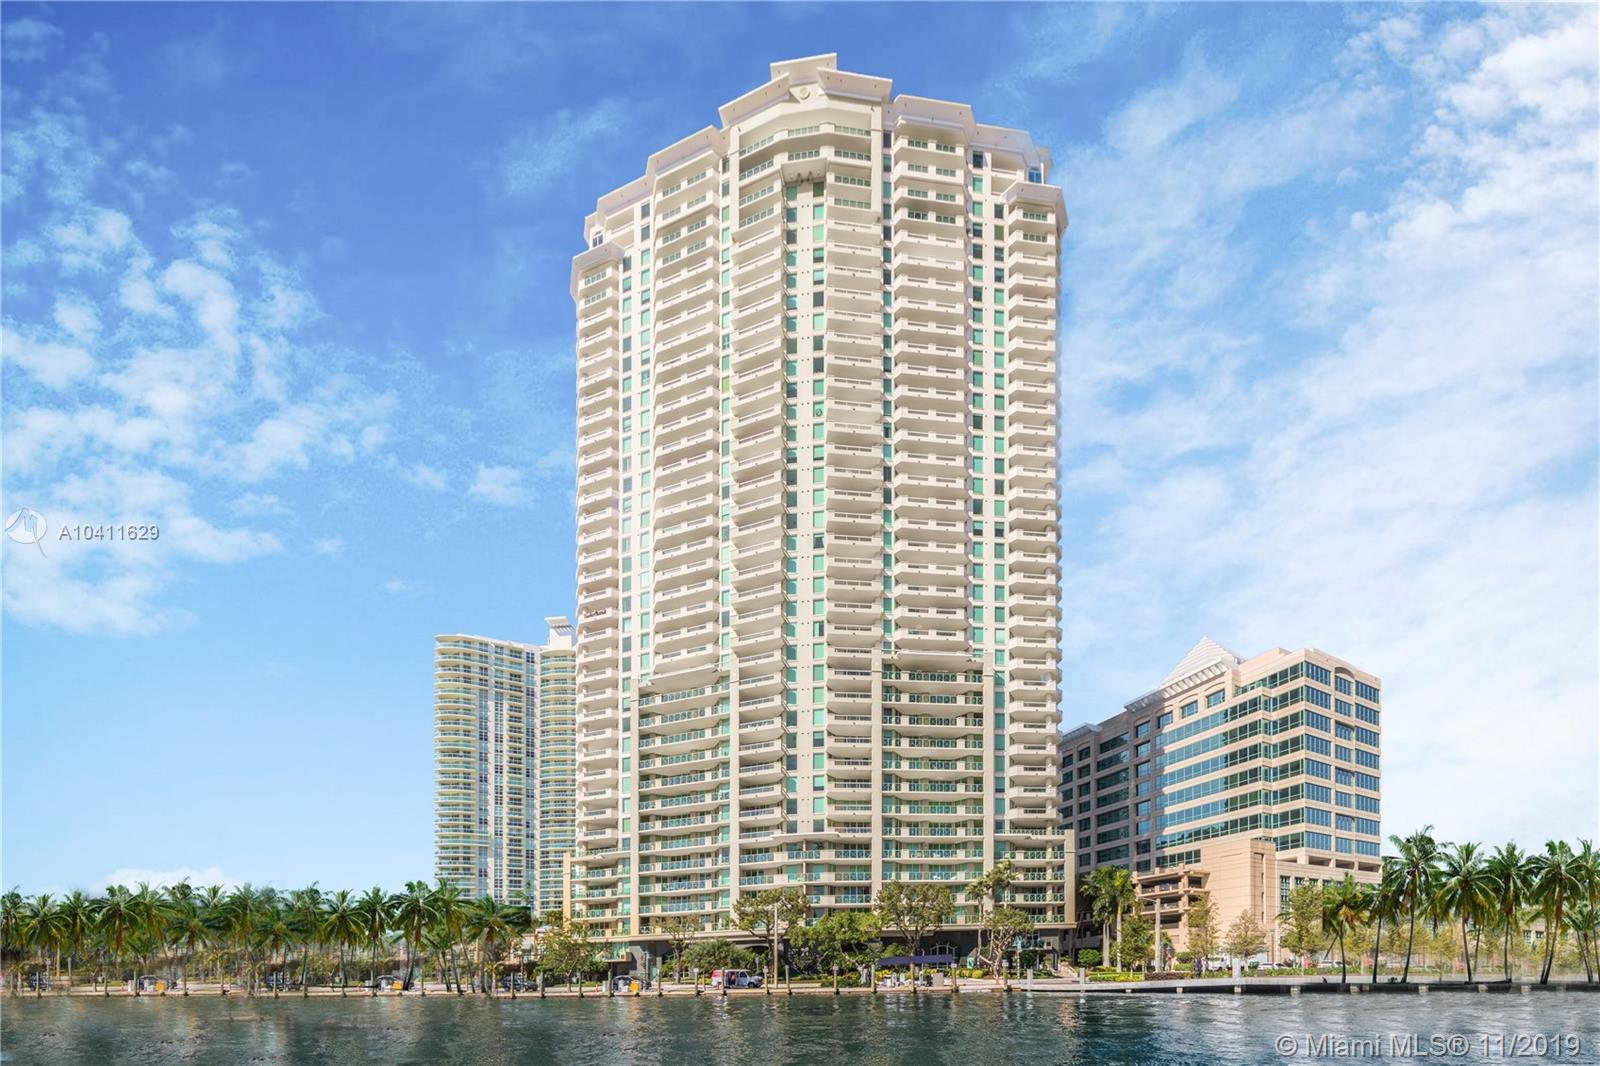 UNIT IS RENTED NOVEMBER 2019-NOV 2020 . OWNER WILL CONSIDER SALE WITH TENANT IN PLACE. GREAT OPPORTUNITY. 